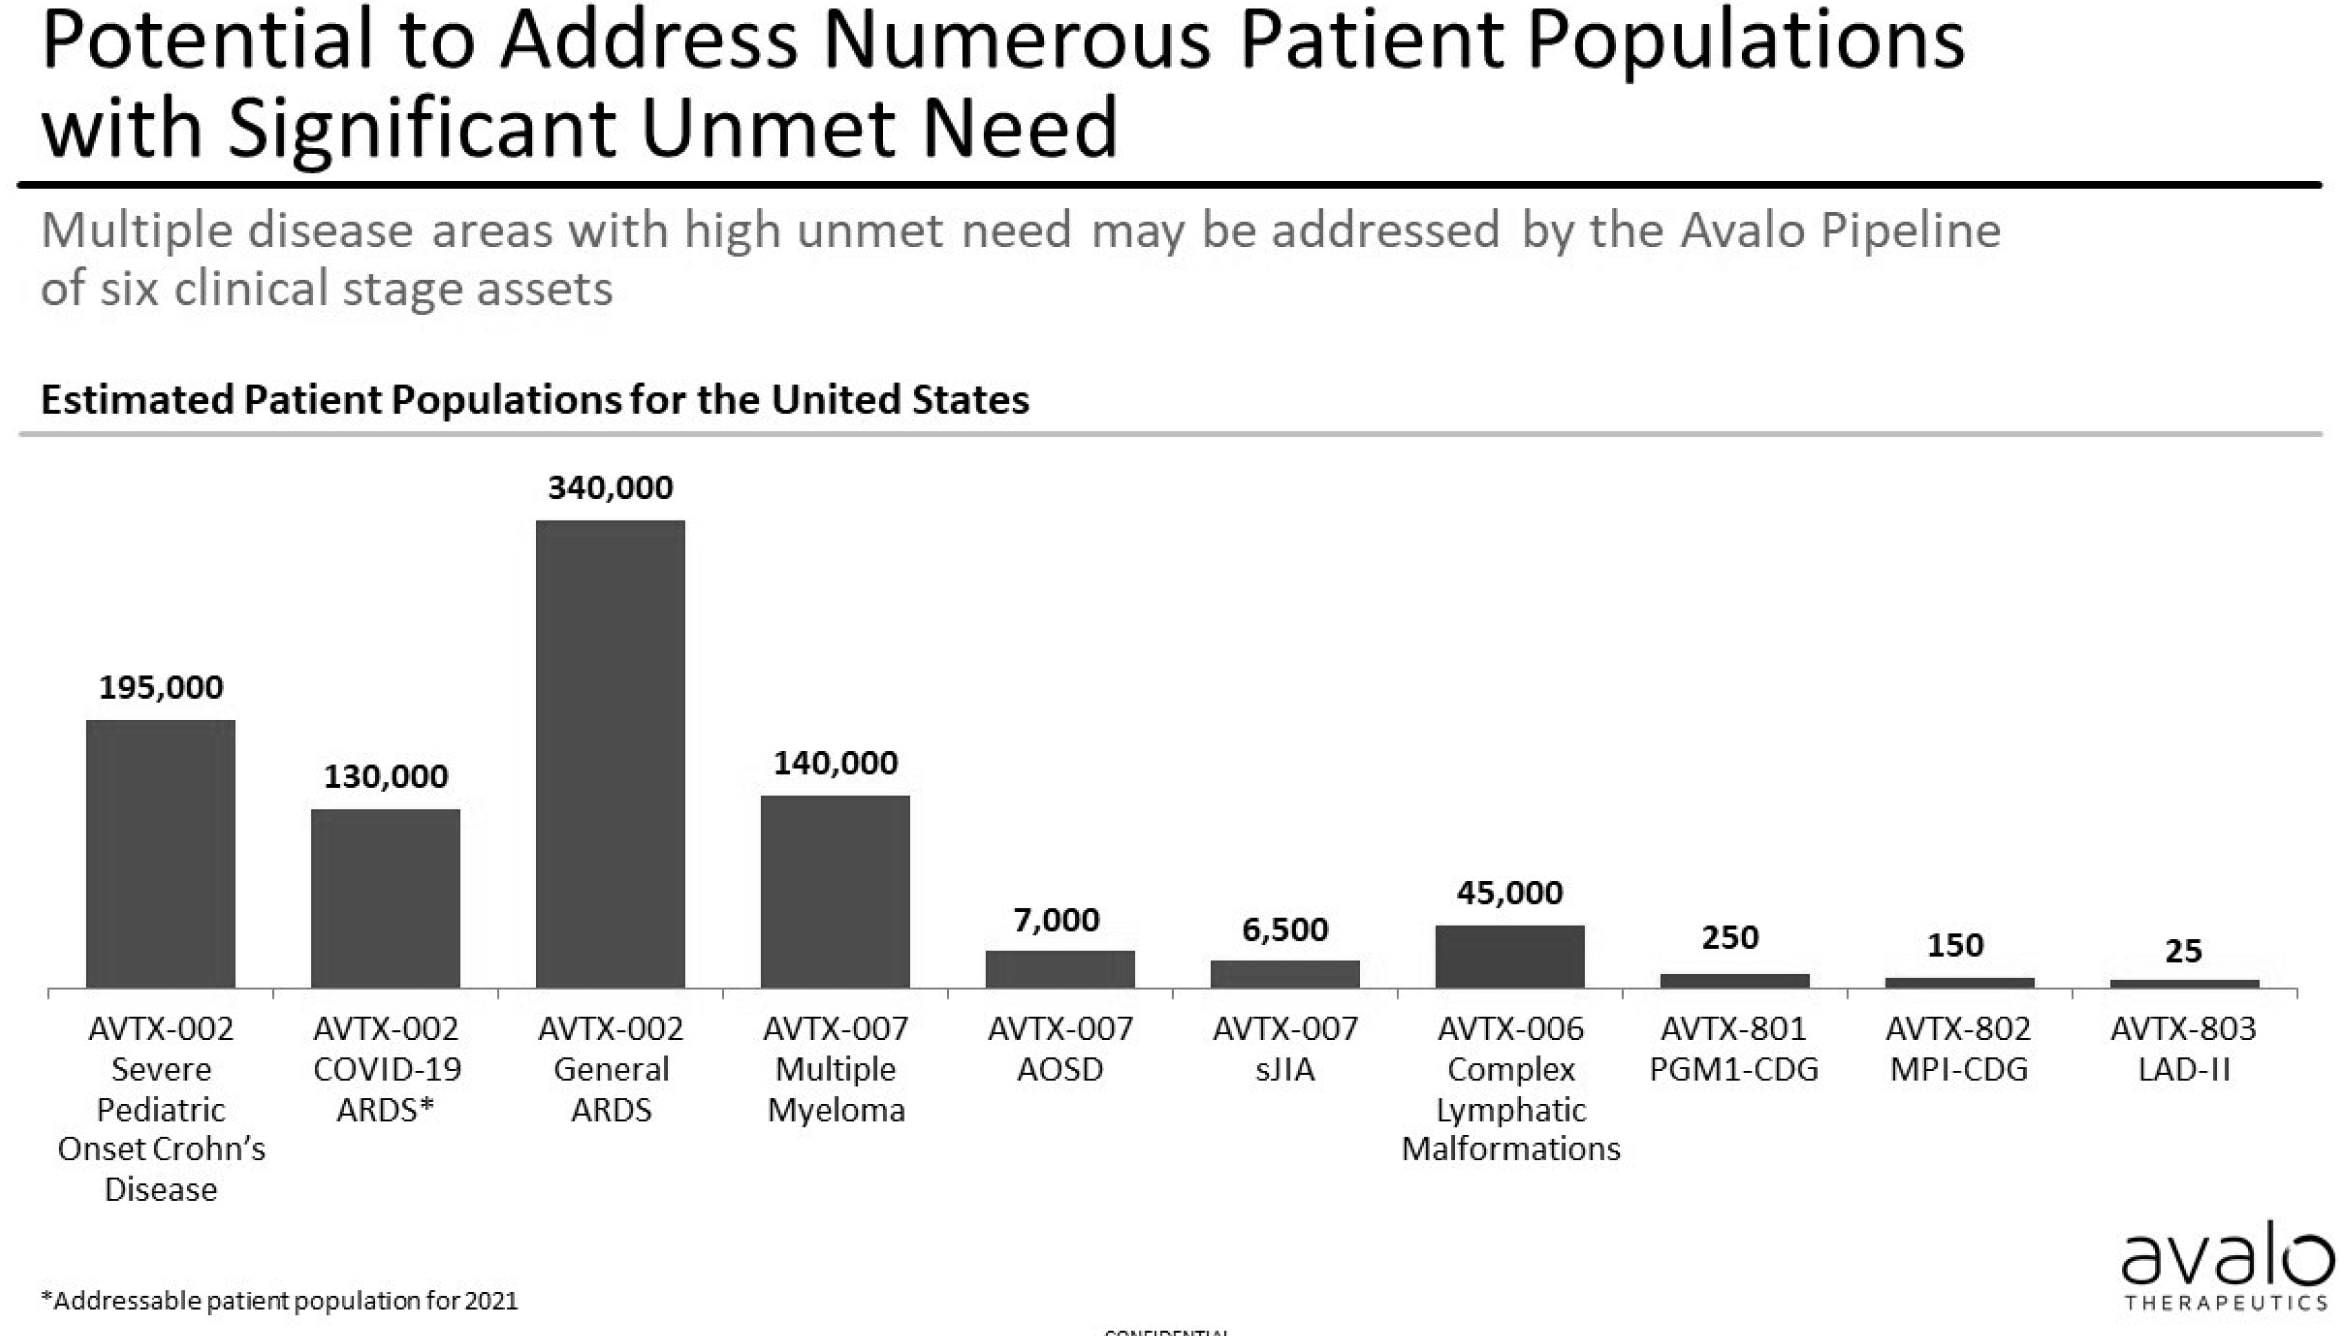 Market Need: Addressing Sizeable Patient Populations with Significant Unmet Need In Rare and Orphan Diseases